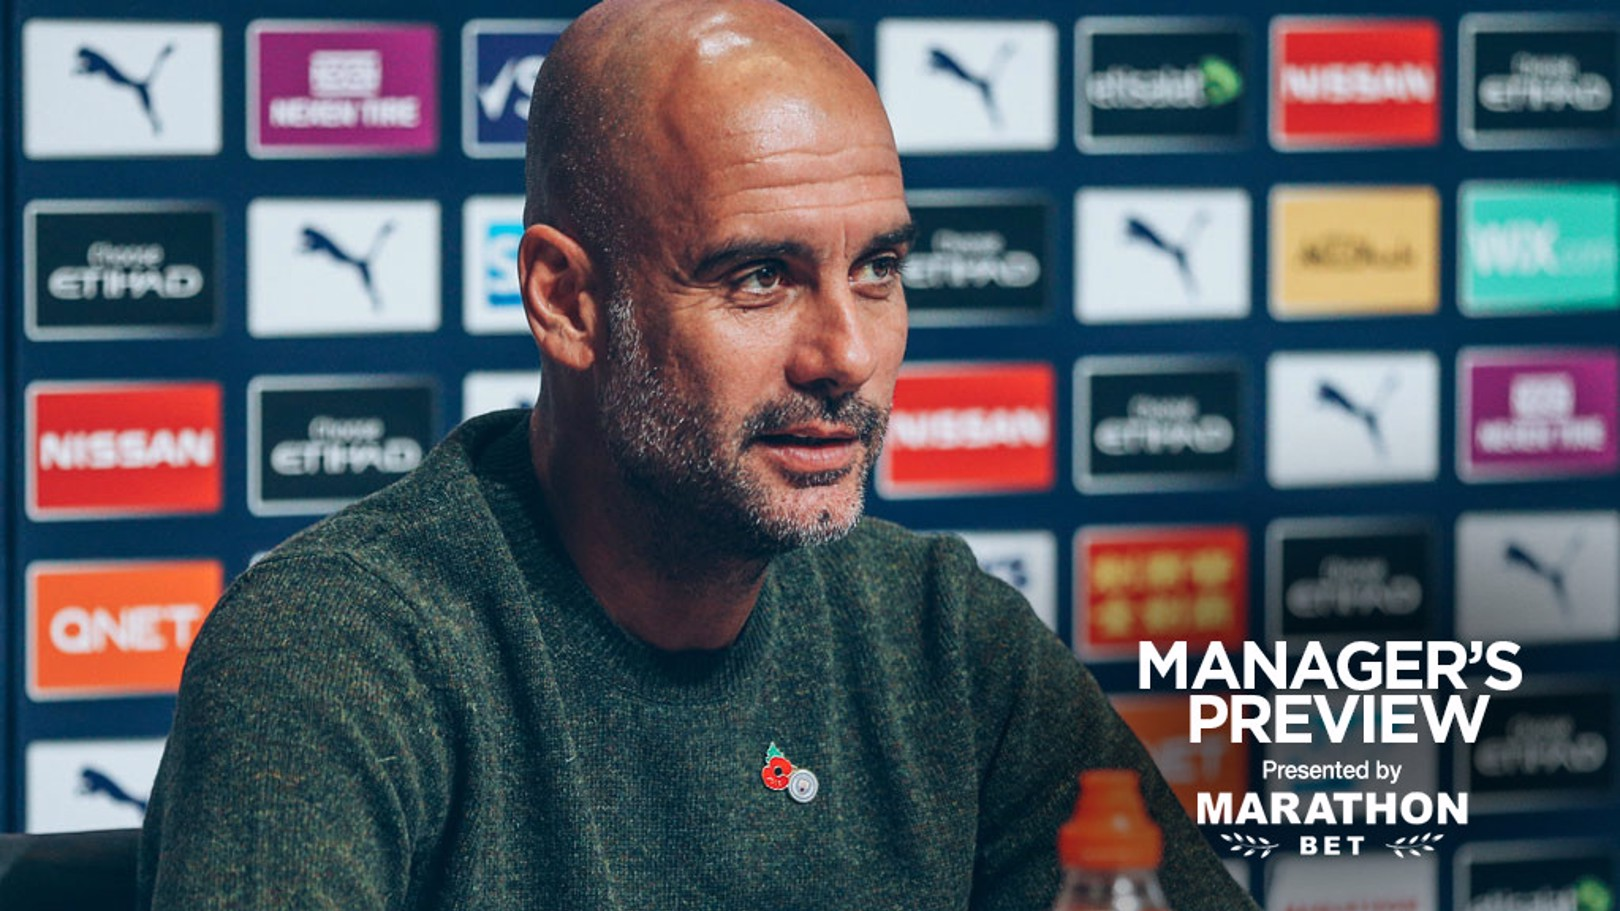 THE BOSS: Pep Guardiola speaks to journalists before City's game against Aston Villa.